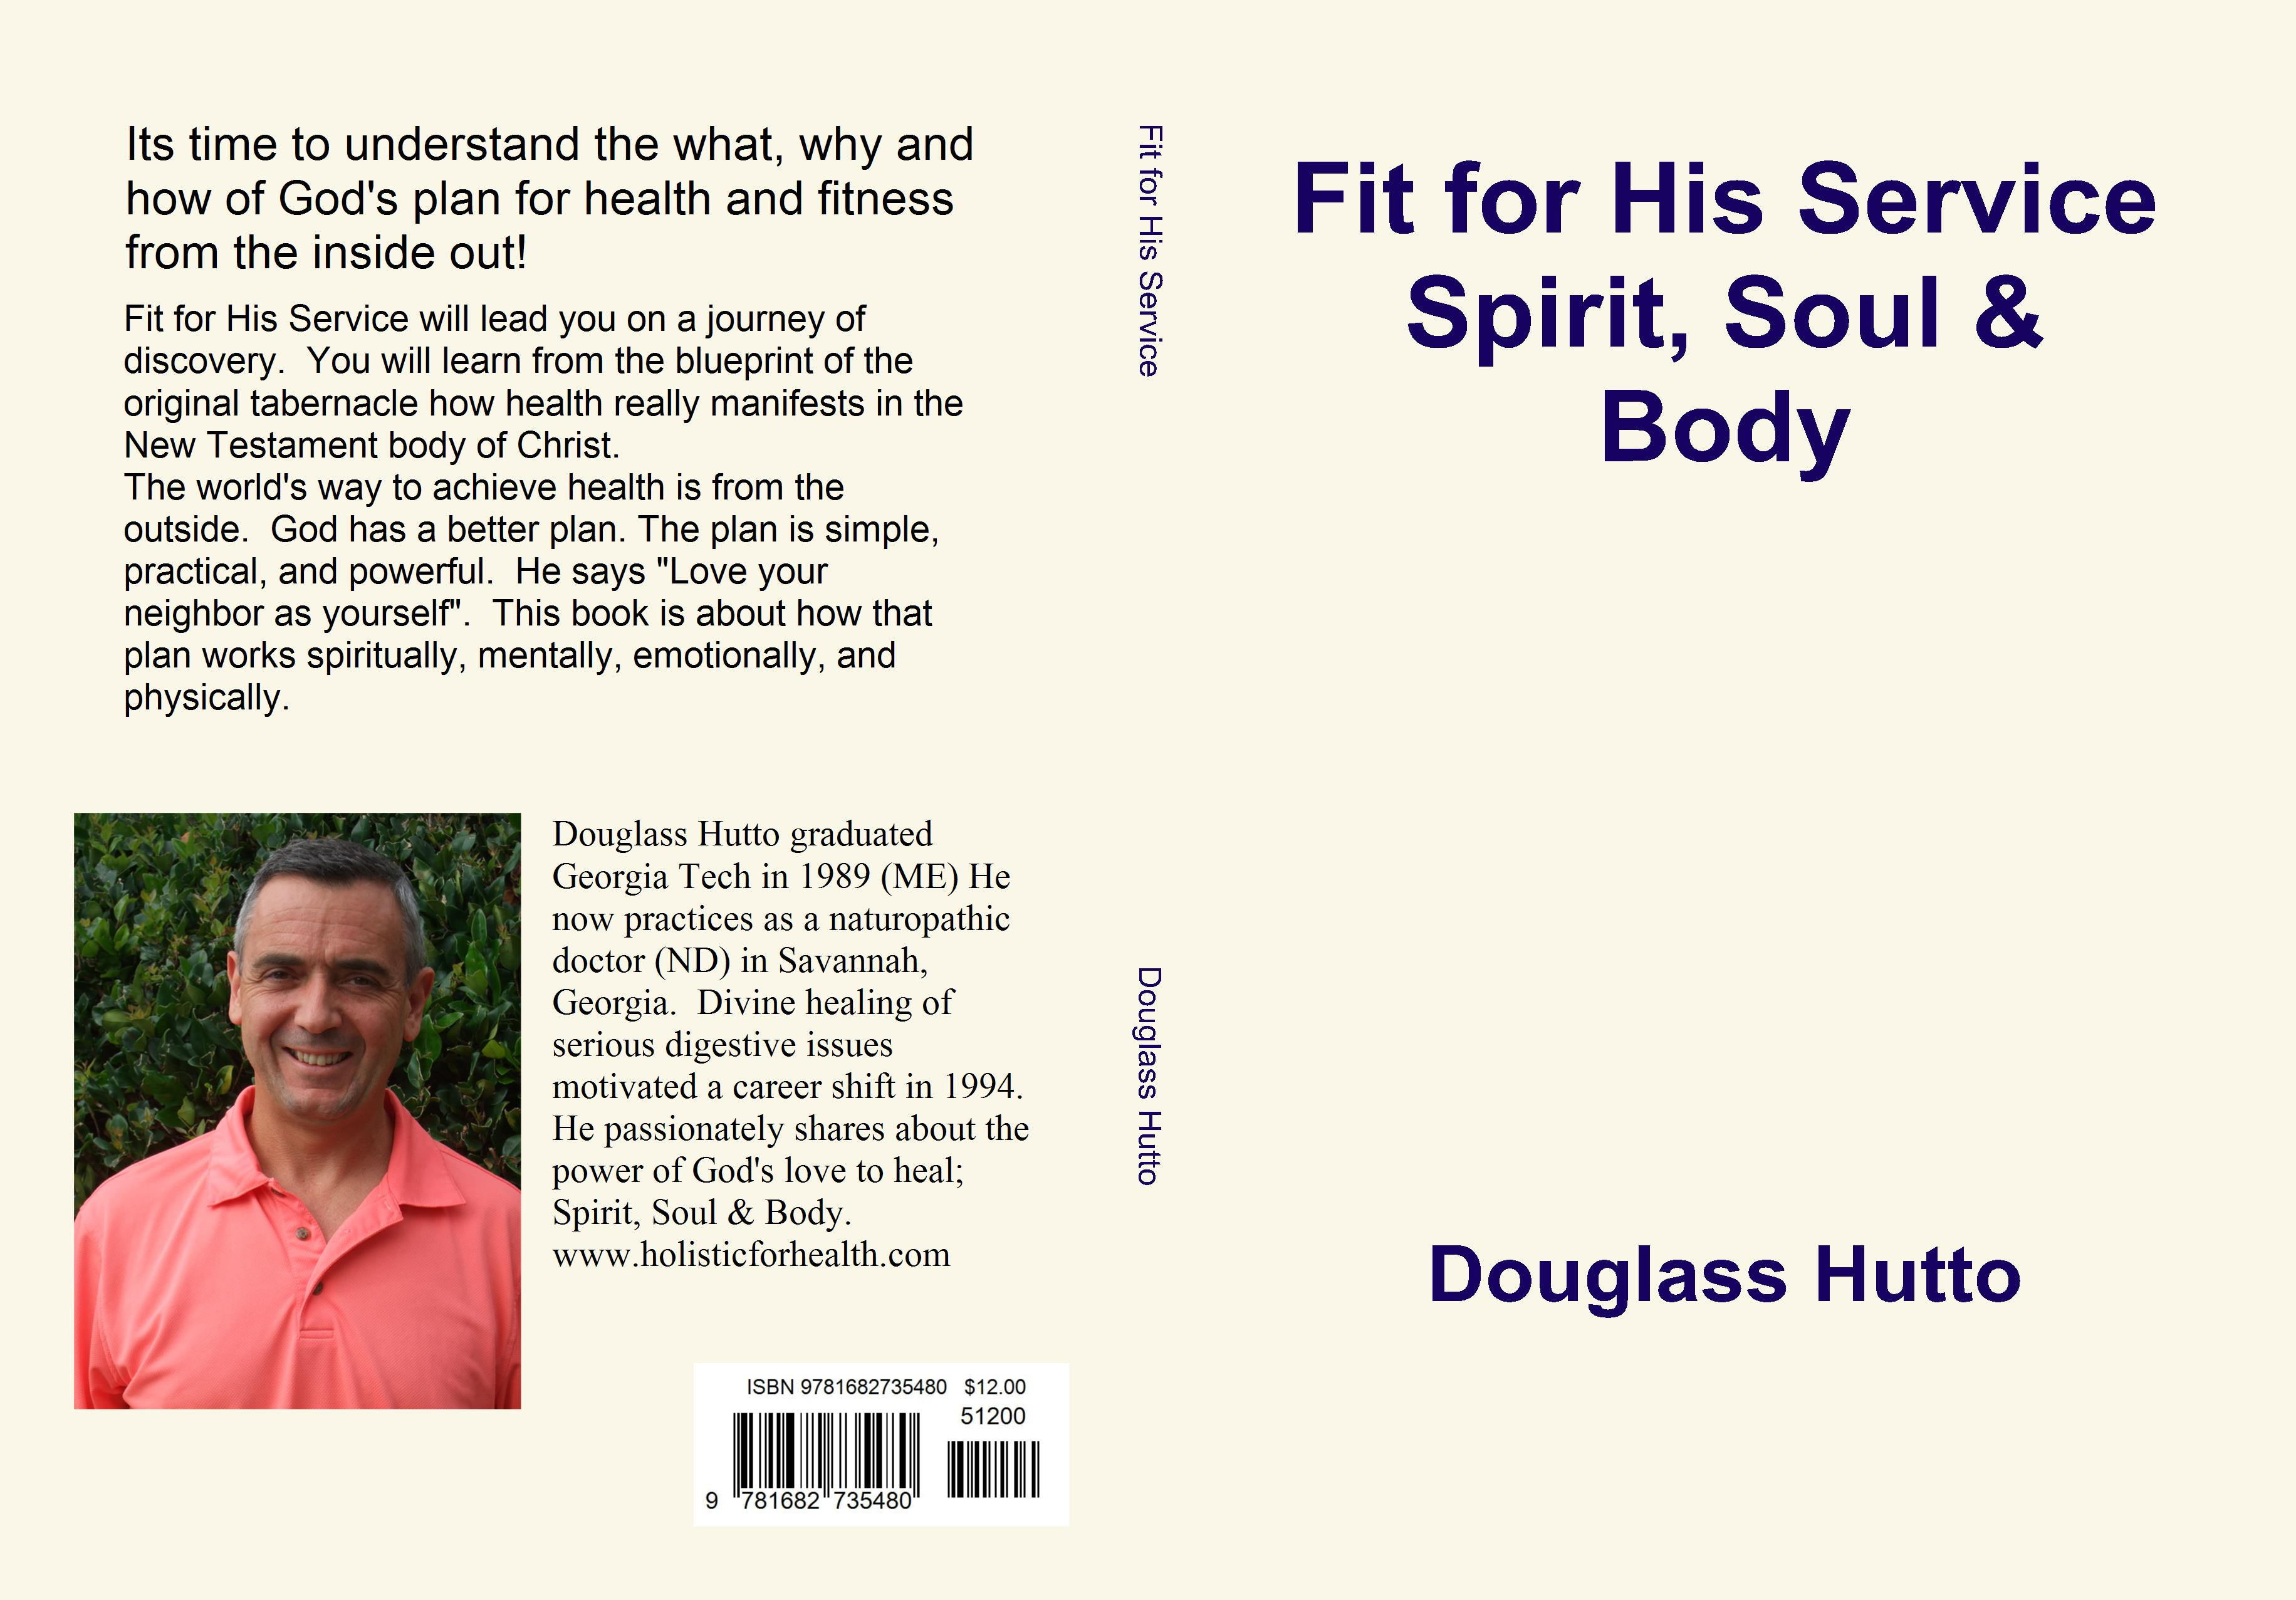 Fit for his service spirit soul body by douglass hutto 1200 fit for his service spirit soul body cover image malvernweather Choice Image